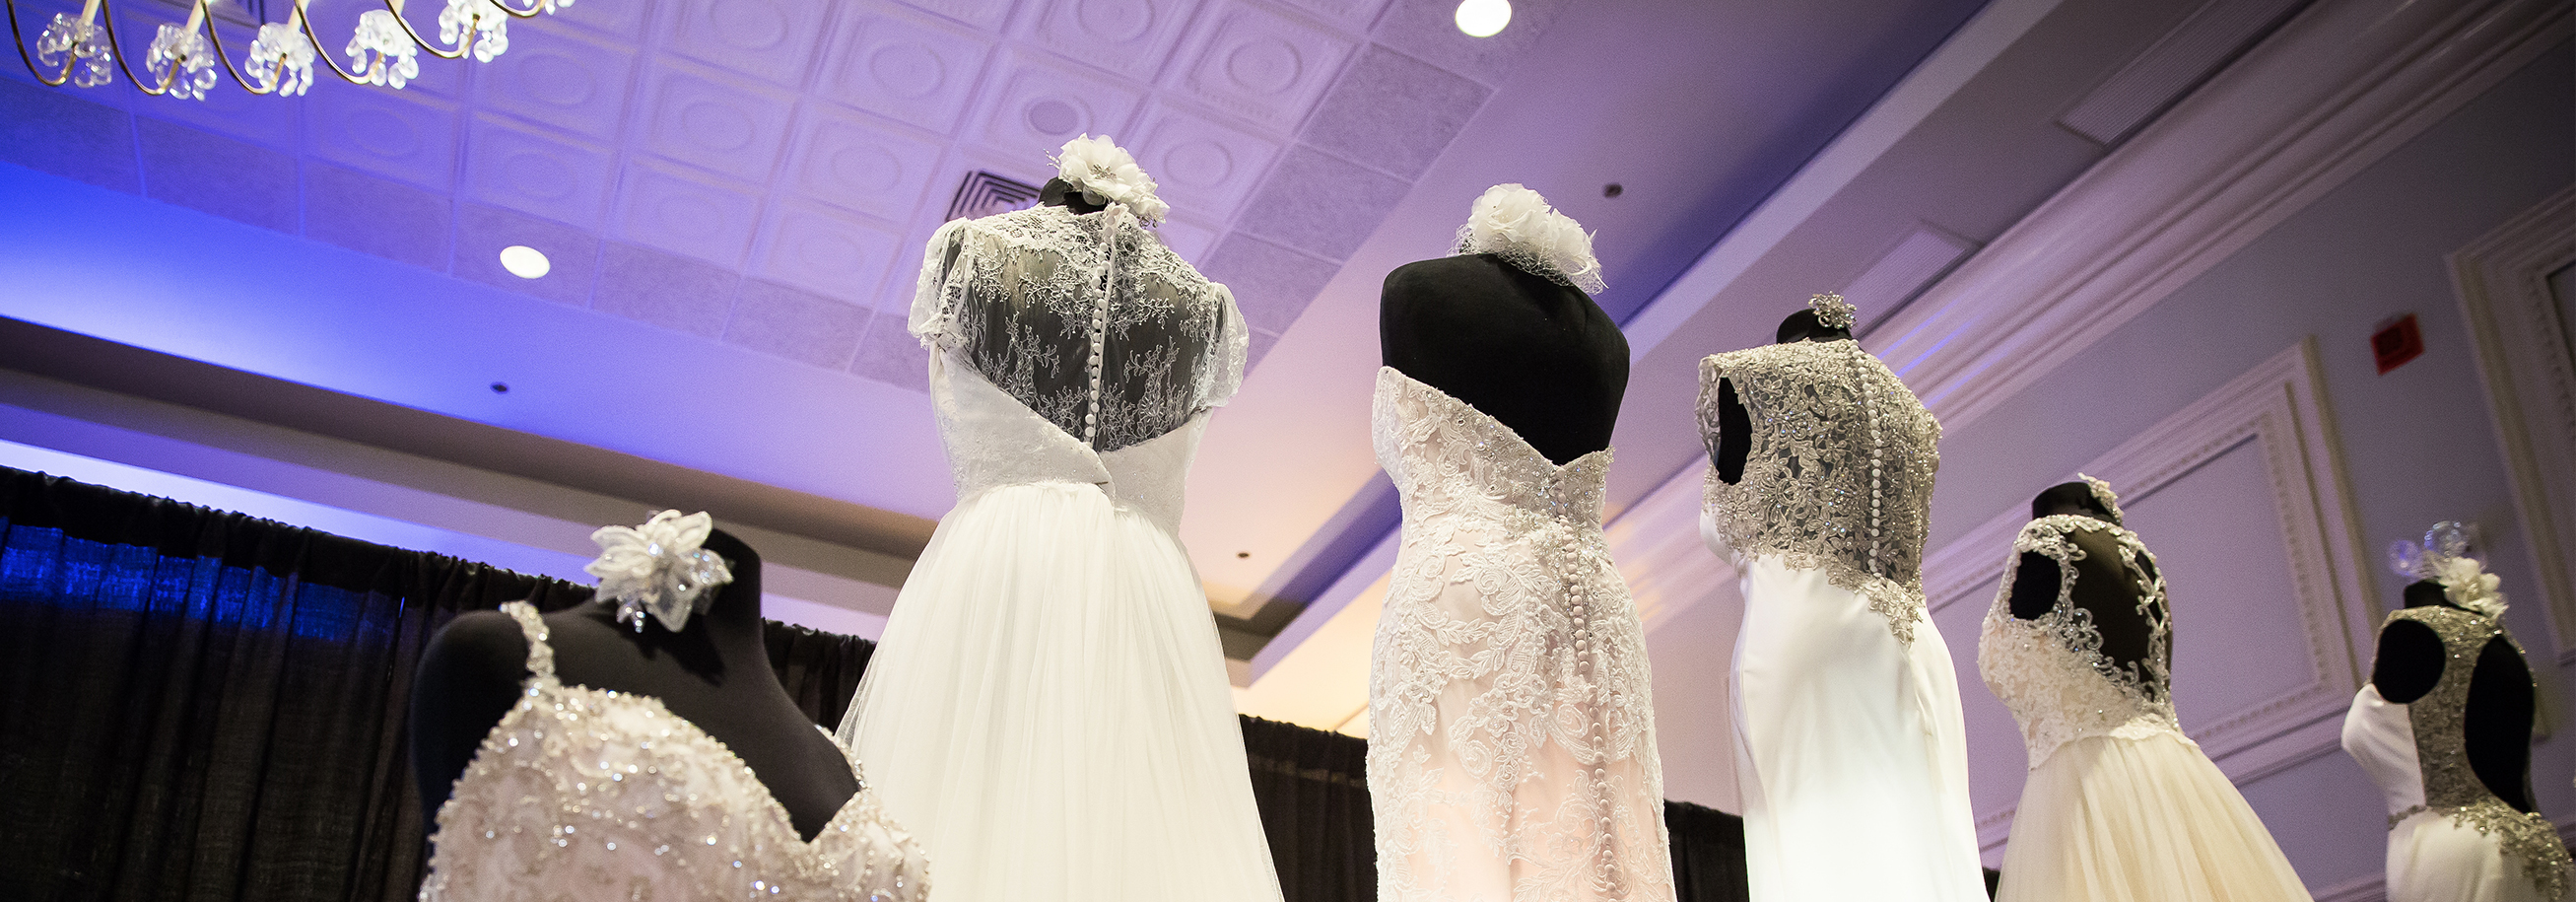 Bridal shows in illinois - Chicago Bridal Shows Chicago Bridal Expos Chicago Bridal Fashion Shows Chicago Bridal Salons Chicago Reception Sites Dates And Locations